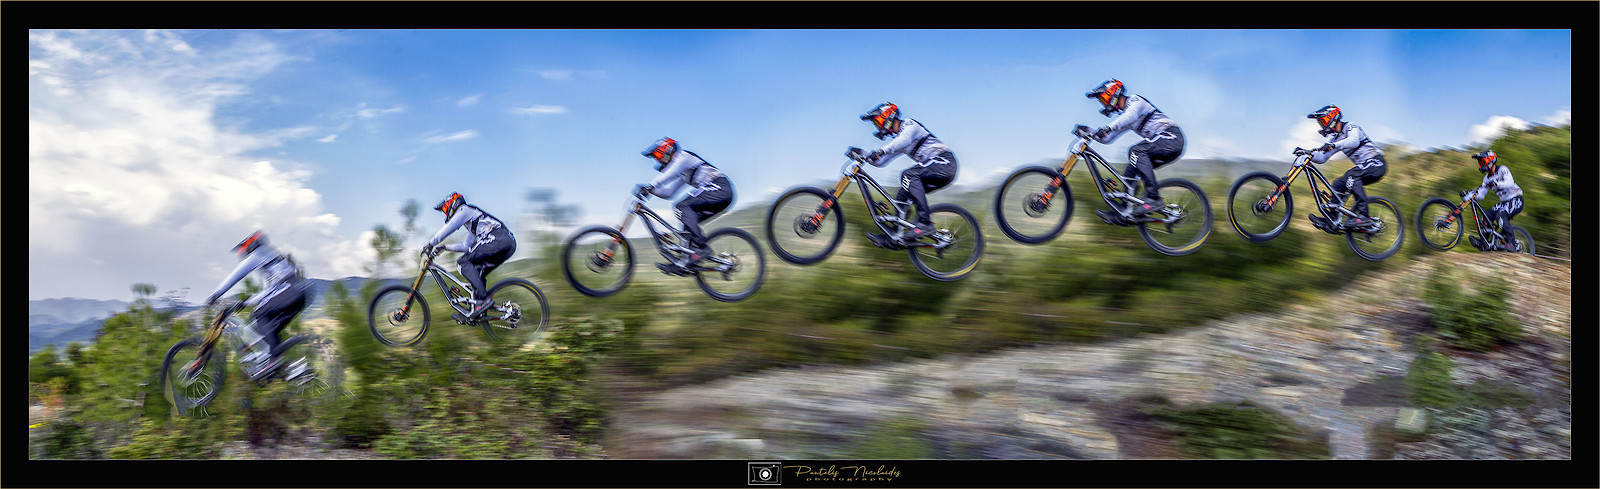 It takes 7 to land it. - andreastheodorou - Mountain Biking Pictures - Vital MTB